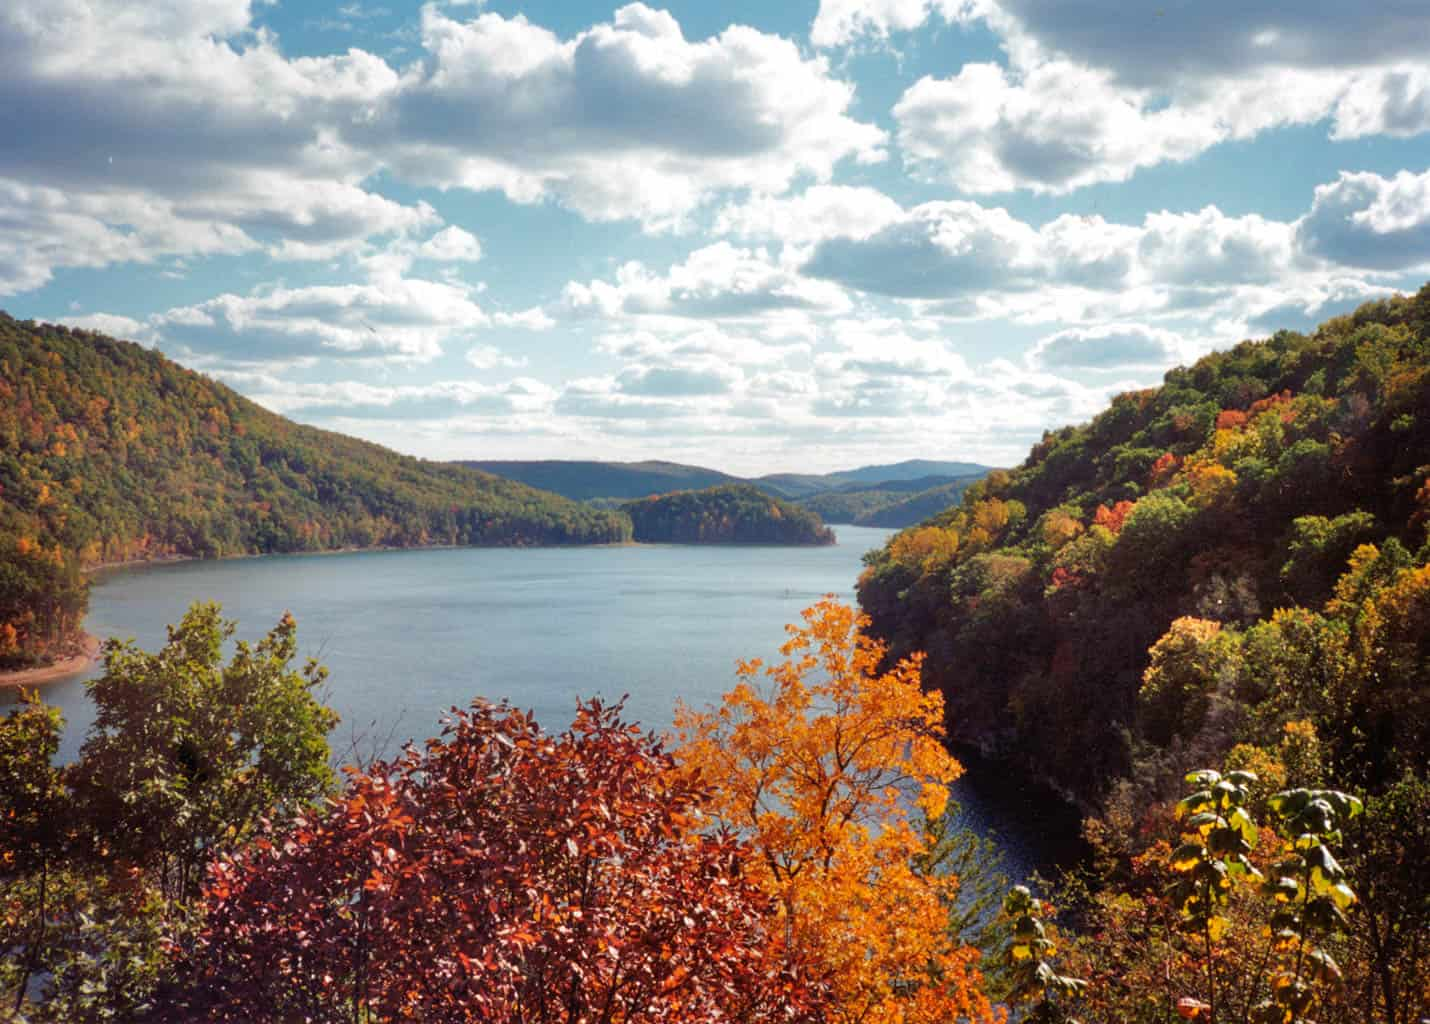 Lake Moomaw – One of Bath's premier outdoor recreation spots, Lake Moomaw offers an endless array of activities in the George Washington National Forest, including boating, fishing, hiking, biking, and camping.